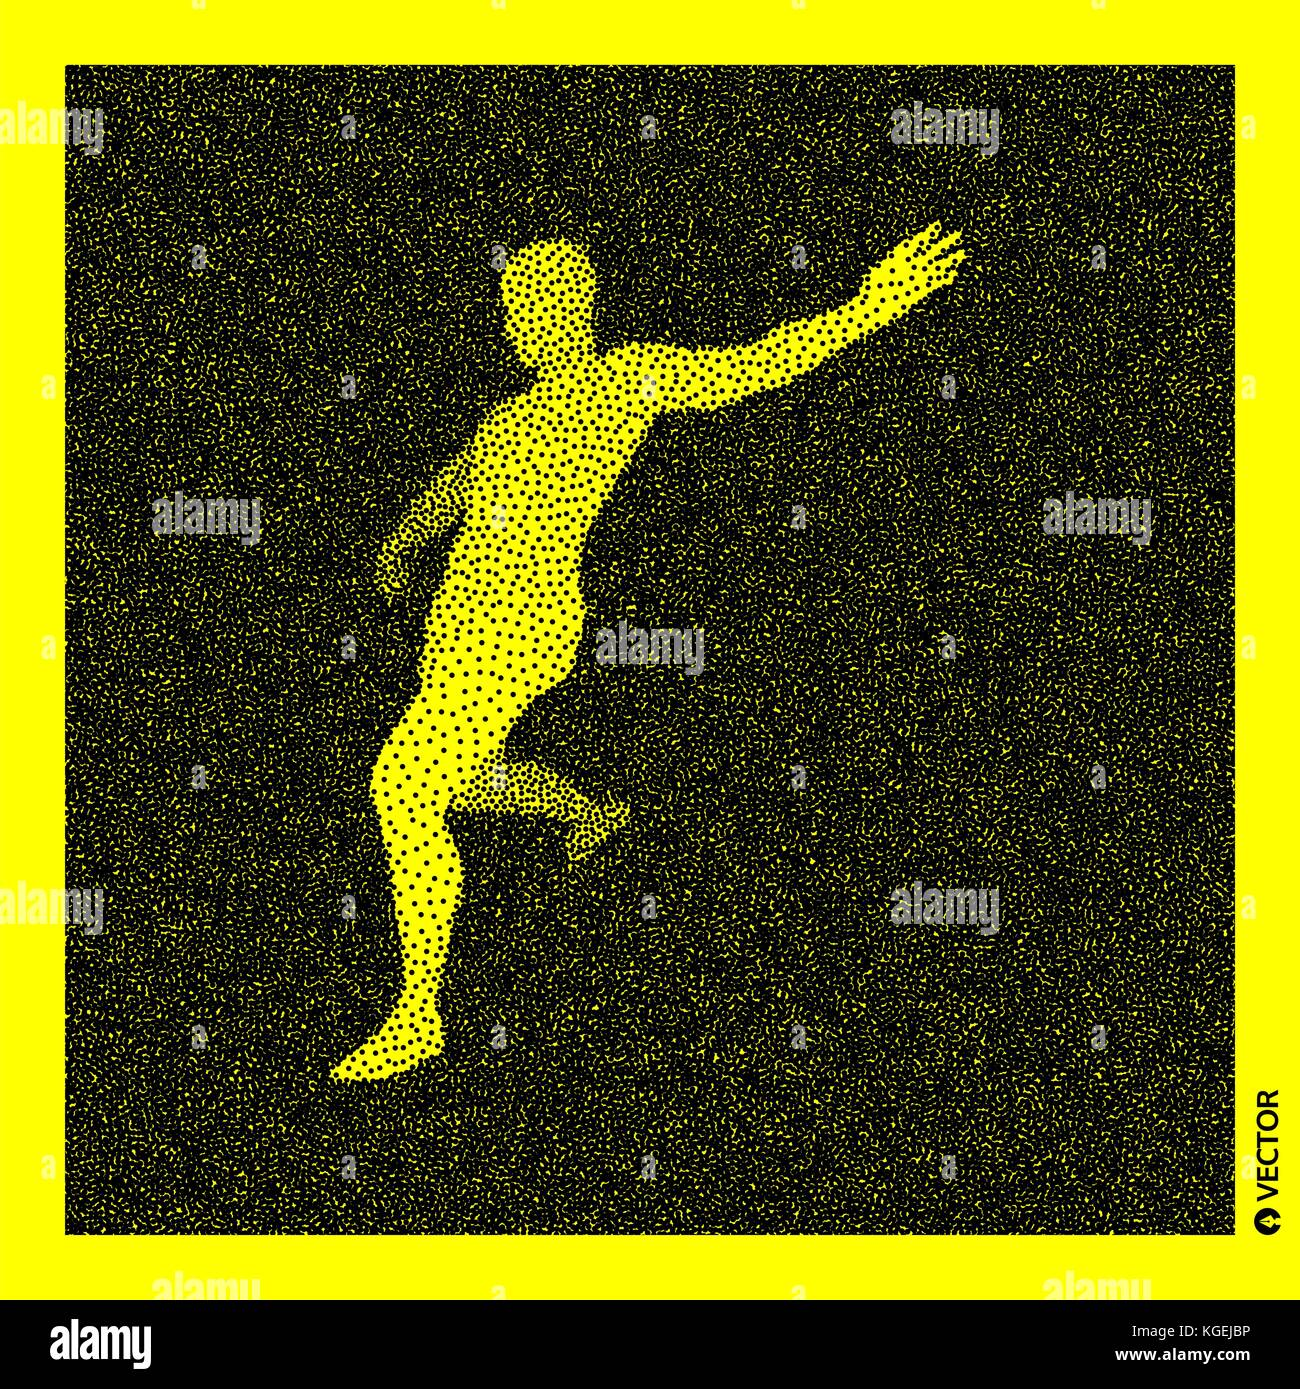 Football player. 3D Human Body Model. Black and yellow grainy design. Stippled vector illustration. Stock Vector